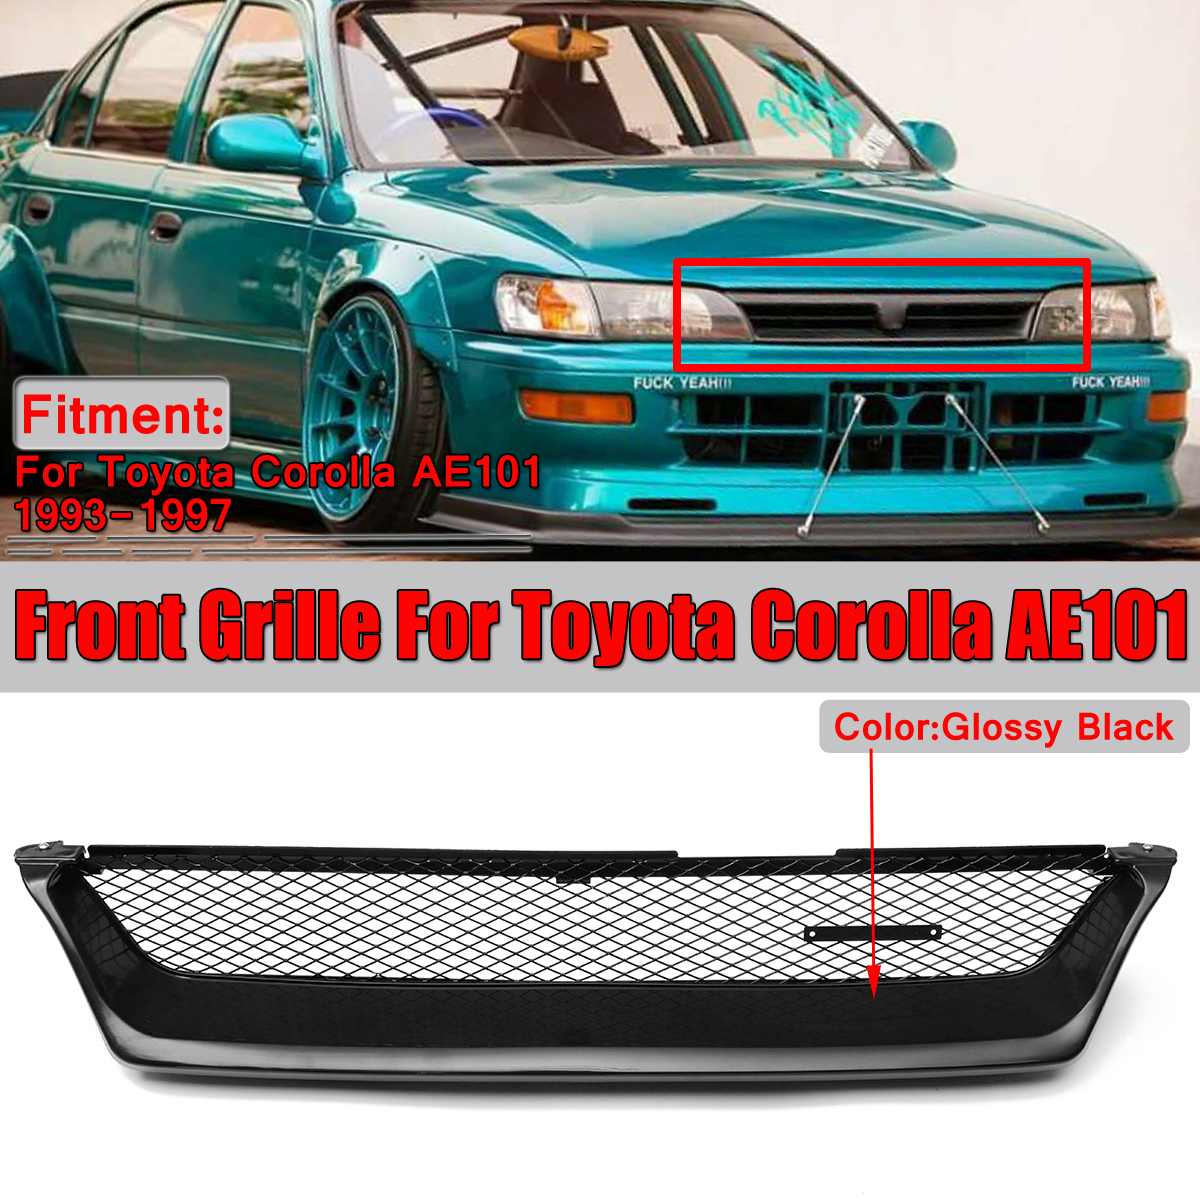 AE101 Grill Glossy Black Car Front Grille Grill Touring Wagon Style For Toyota Corolla AE101 1993-1997 Racing GrillsAE101 Grill Glossy Black Car Front Grille Grill Touring Wagon Style For Toyota Corolla AE101 1993-1997 Racing Grills